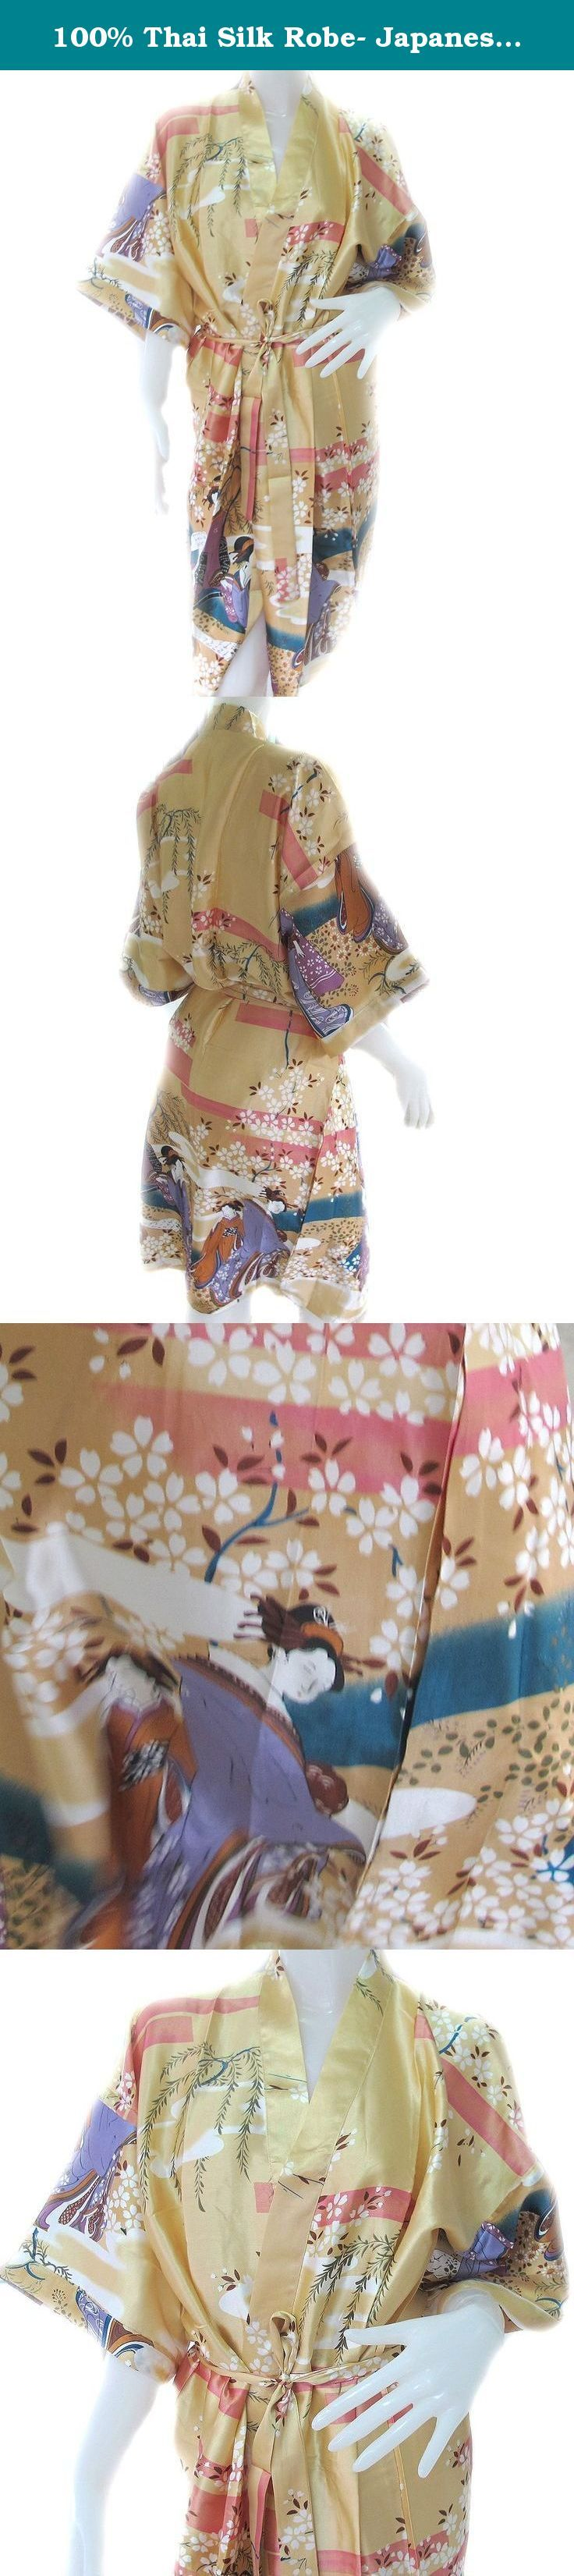 100% Thai Silk Robe- Japanese Geisha Design- Beige Color. rand New. Enclosed in plastic before shipping. 100% Thai Silk. These are the extra-large sleeved, robes. These robes are extremely popular items in the Thai markets. Possibly, the most unique and beautiful item you may ever give or receive!!! The same item found in the highest quality specialty shops and boutiques for 2-3 times the price. 100% Guaranteed. Ships to you DIRECT from Thailand. Expect 1-2 weeks for expedited delivery…